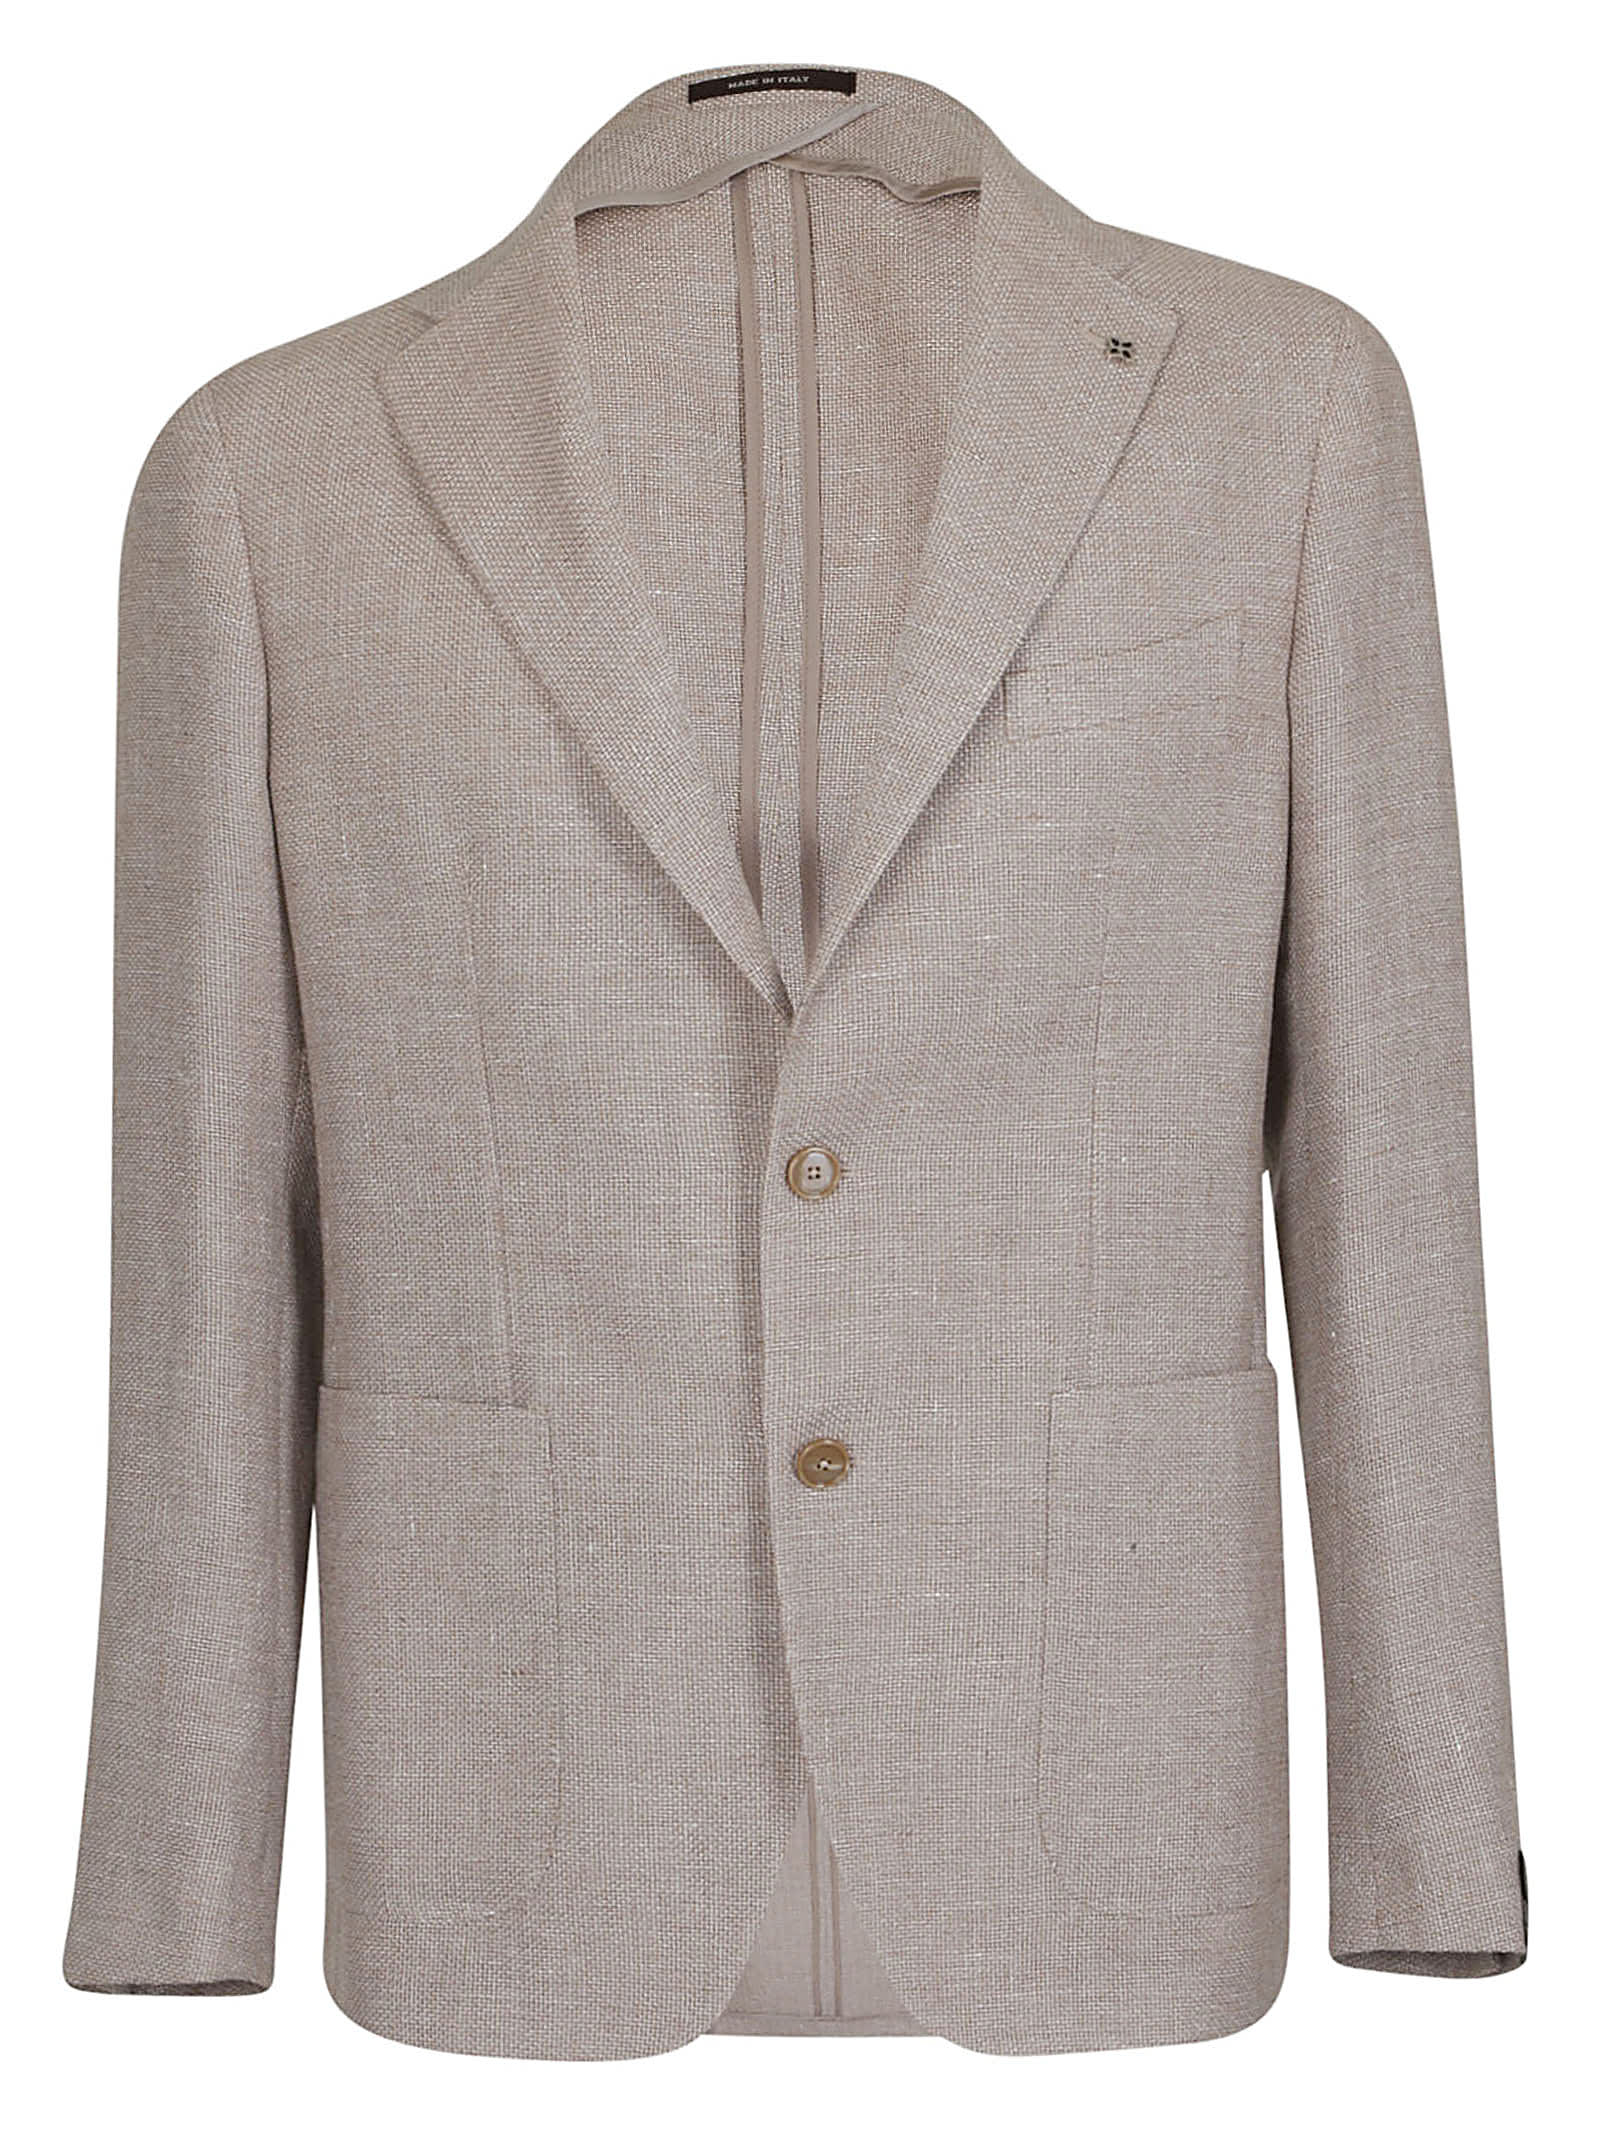 Tagliatore Tagliatore Single Breasted Blazer